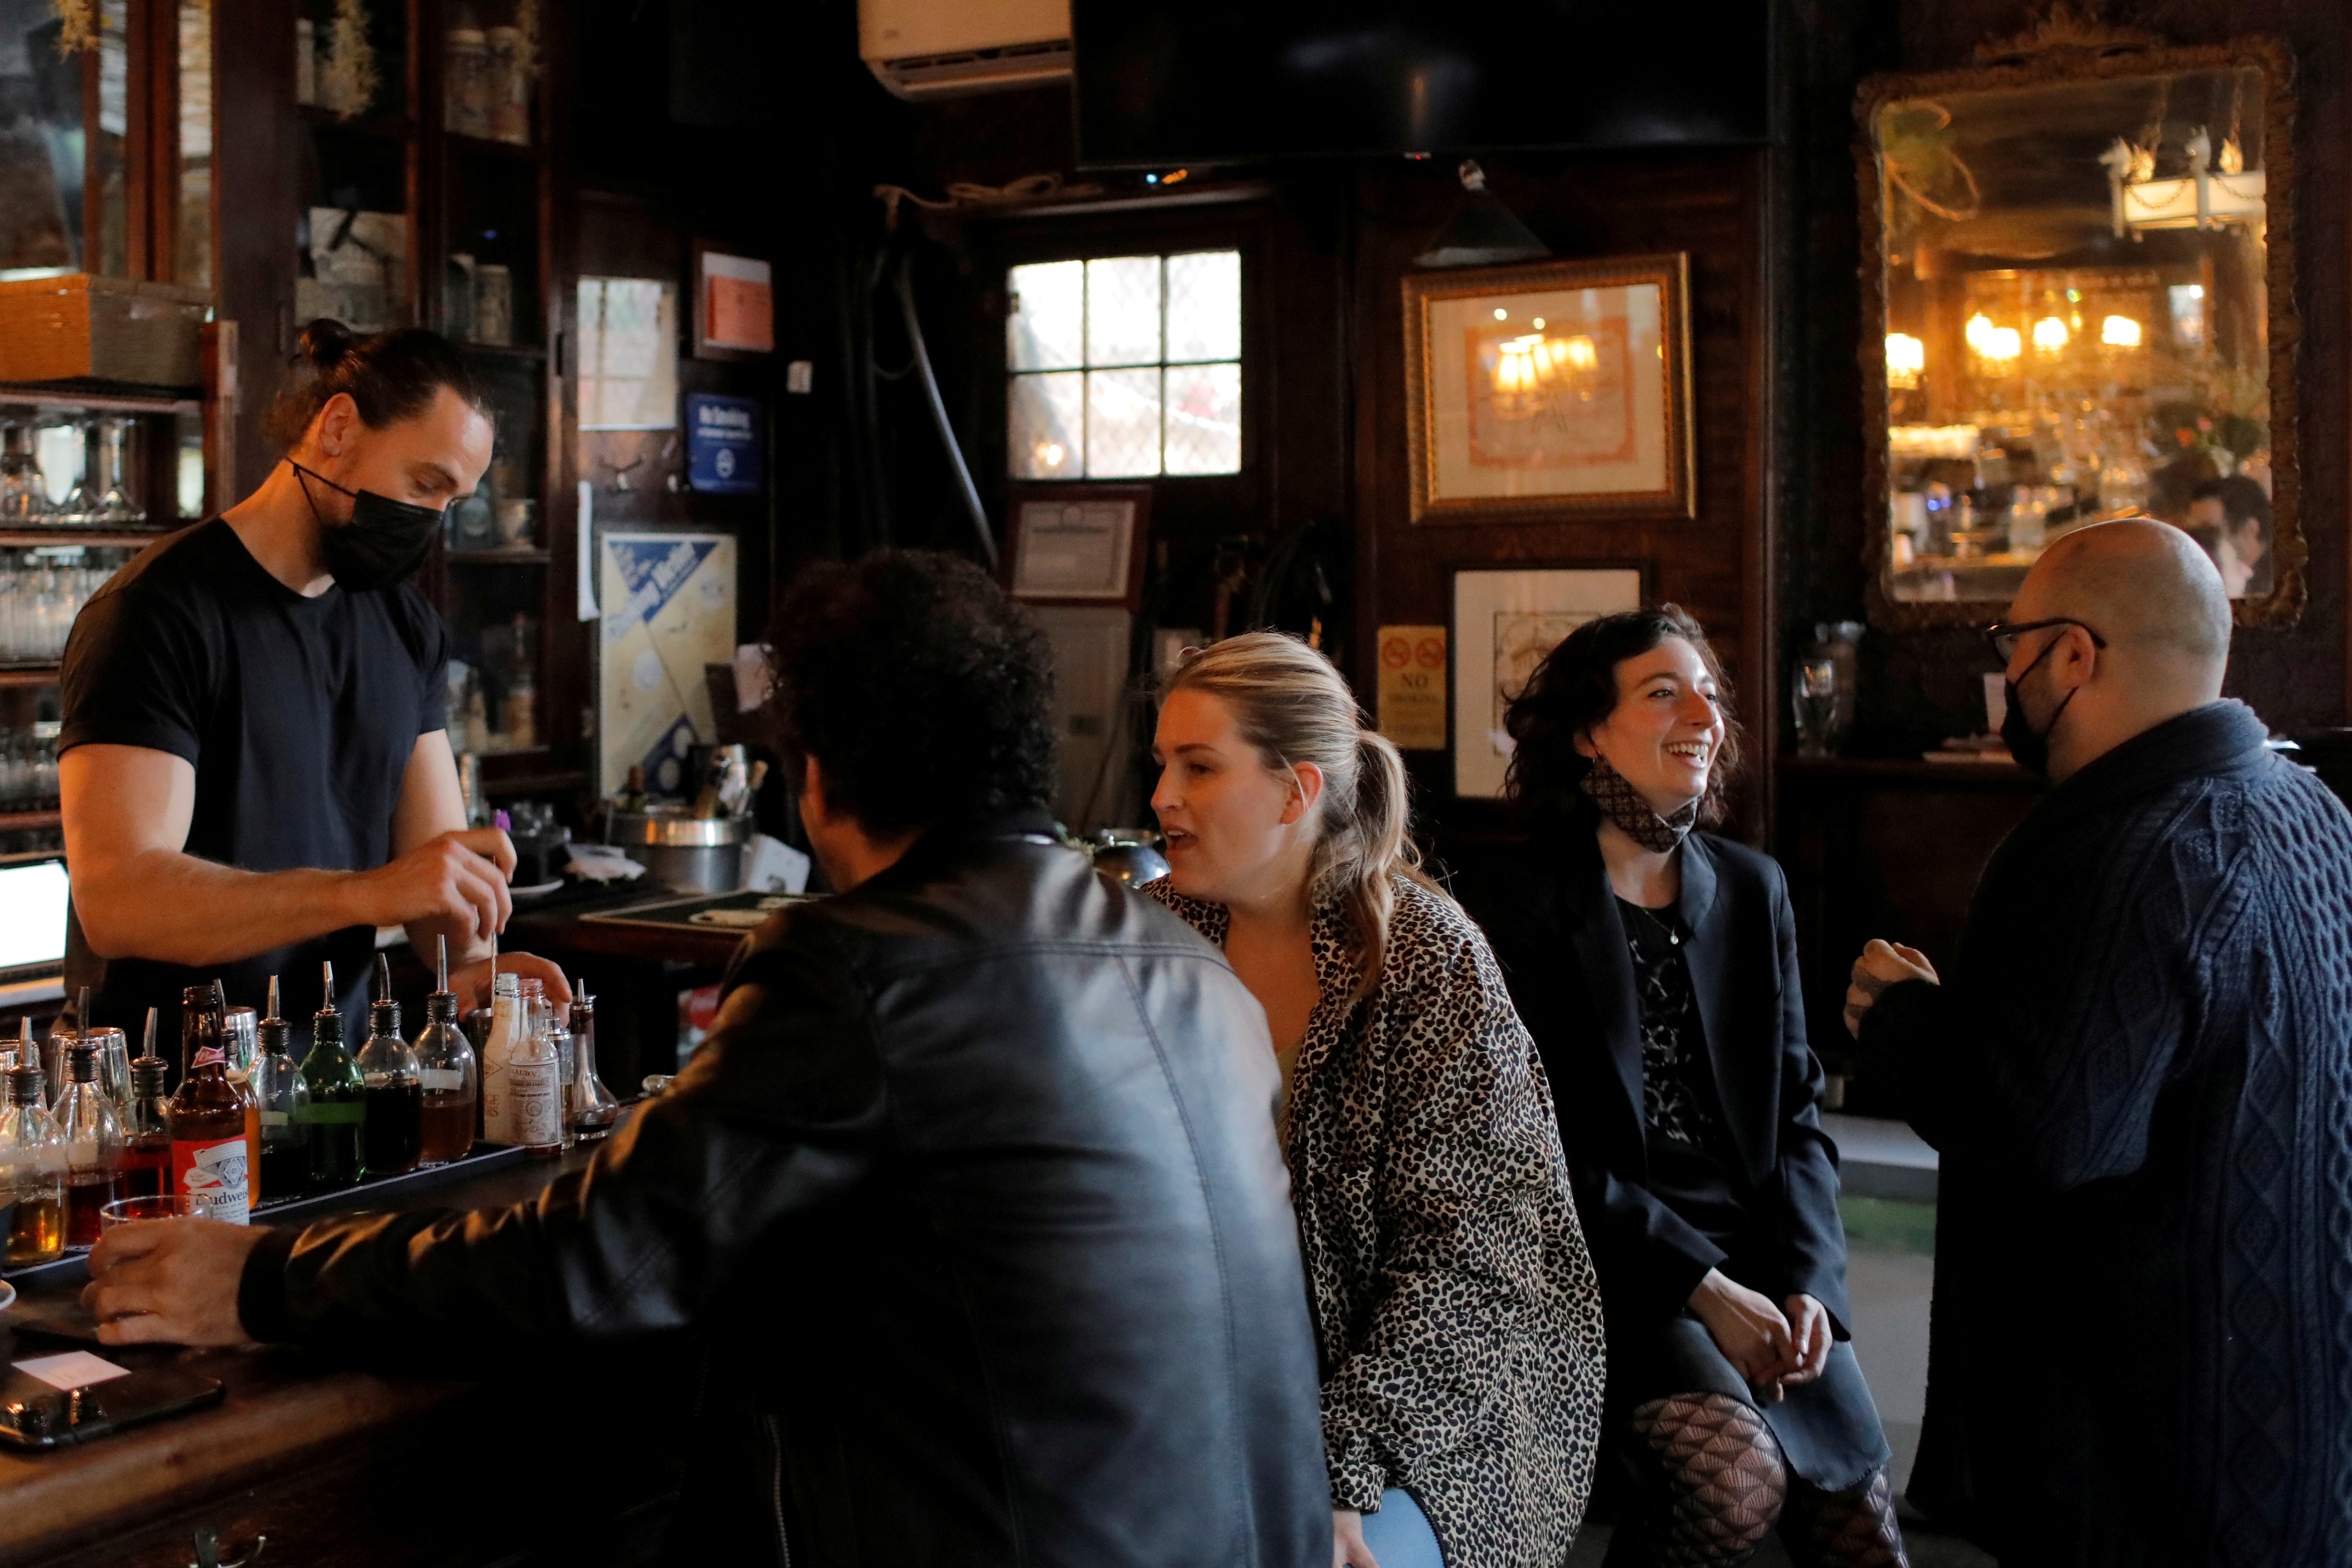 People gather at the White Horse Tavern (est. 1880) as restrictions eased on indoor drinking in bars, allowing seating at the bar, during the outbreak of the coronavirus disease (COVID-19) in Manhattan, New York City, New York, U.S., May 3, 2021. REUTERS/Andrew Kelly/File Photo